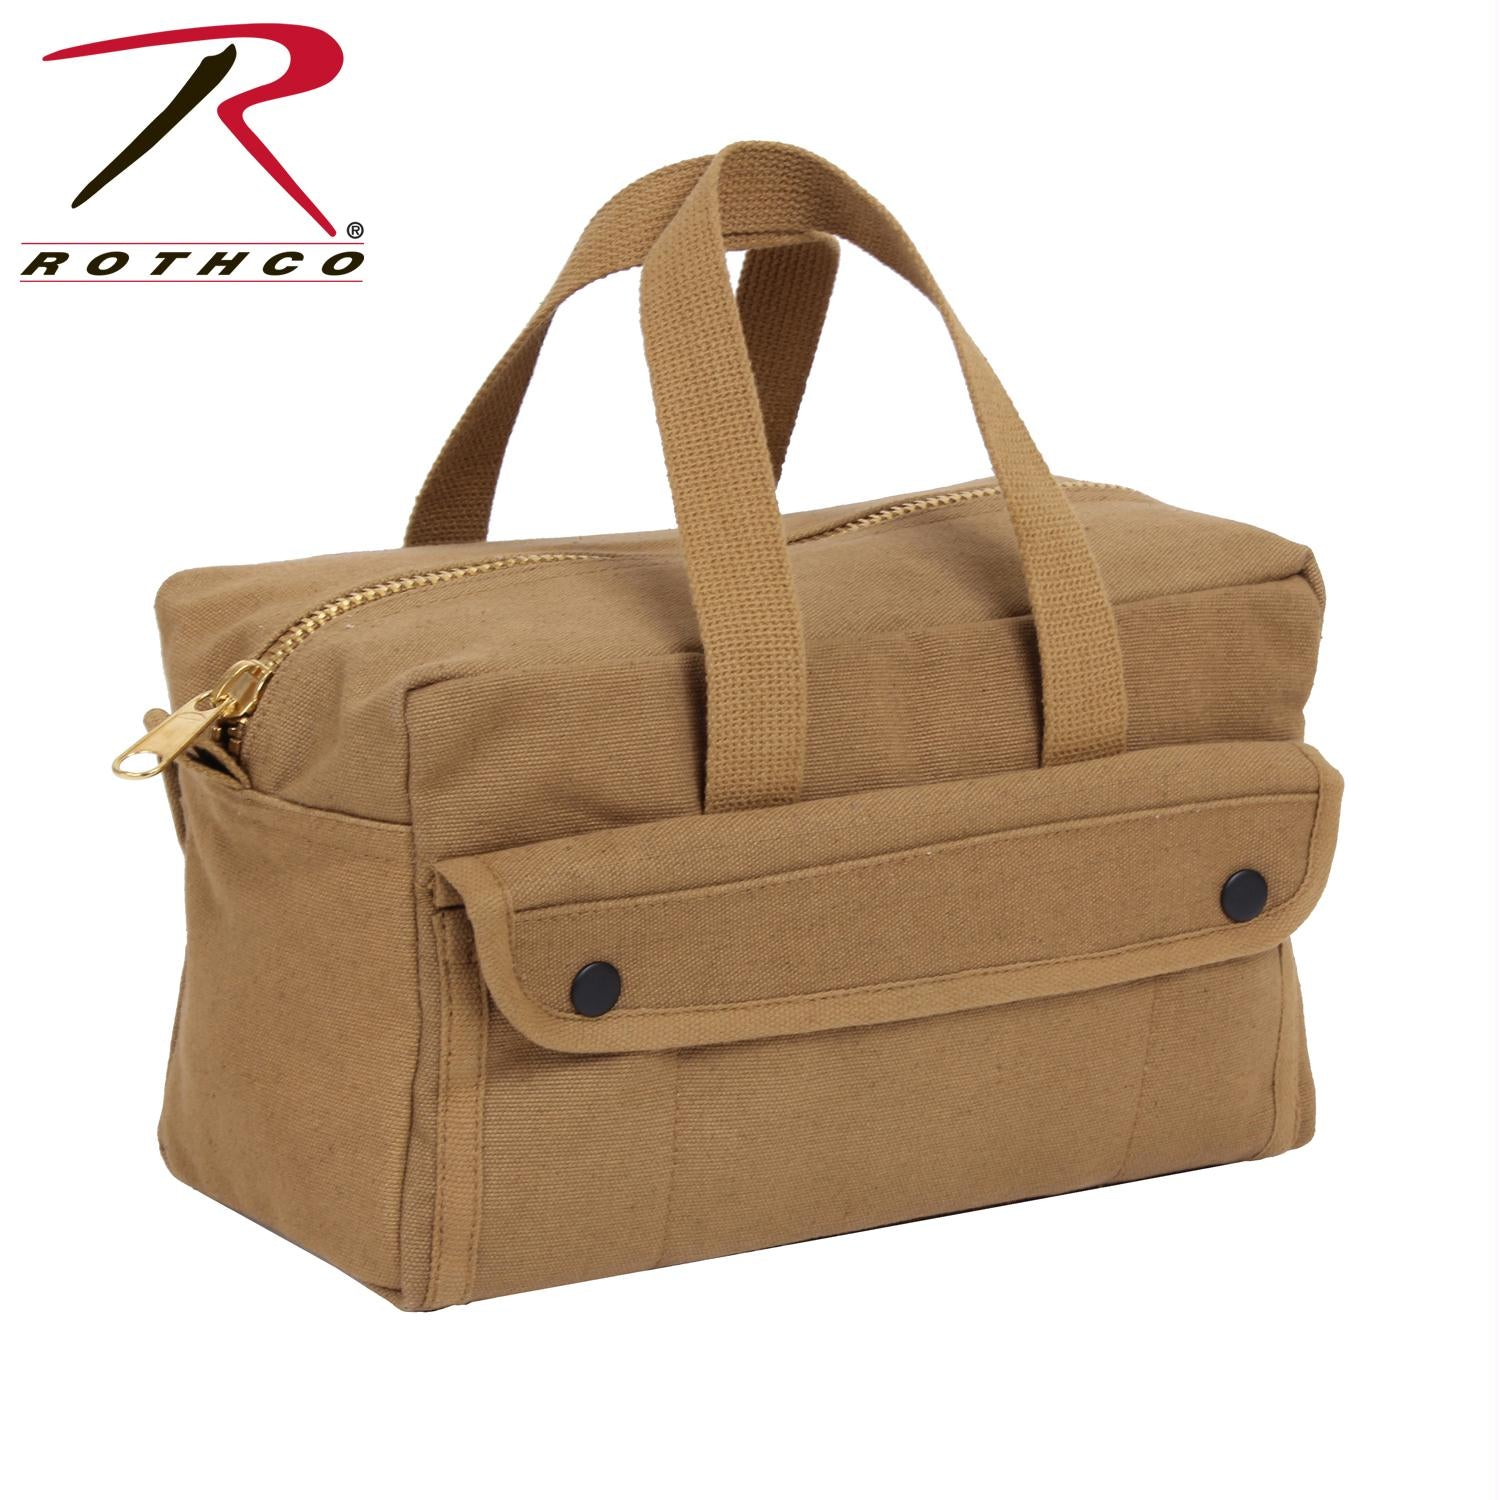 Rothco G.I. Type Mechanics Tool Bag With Brass Zipper - Coyote Brown